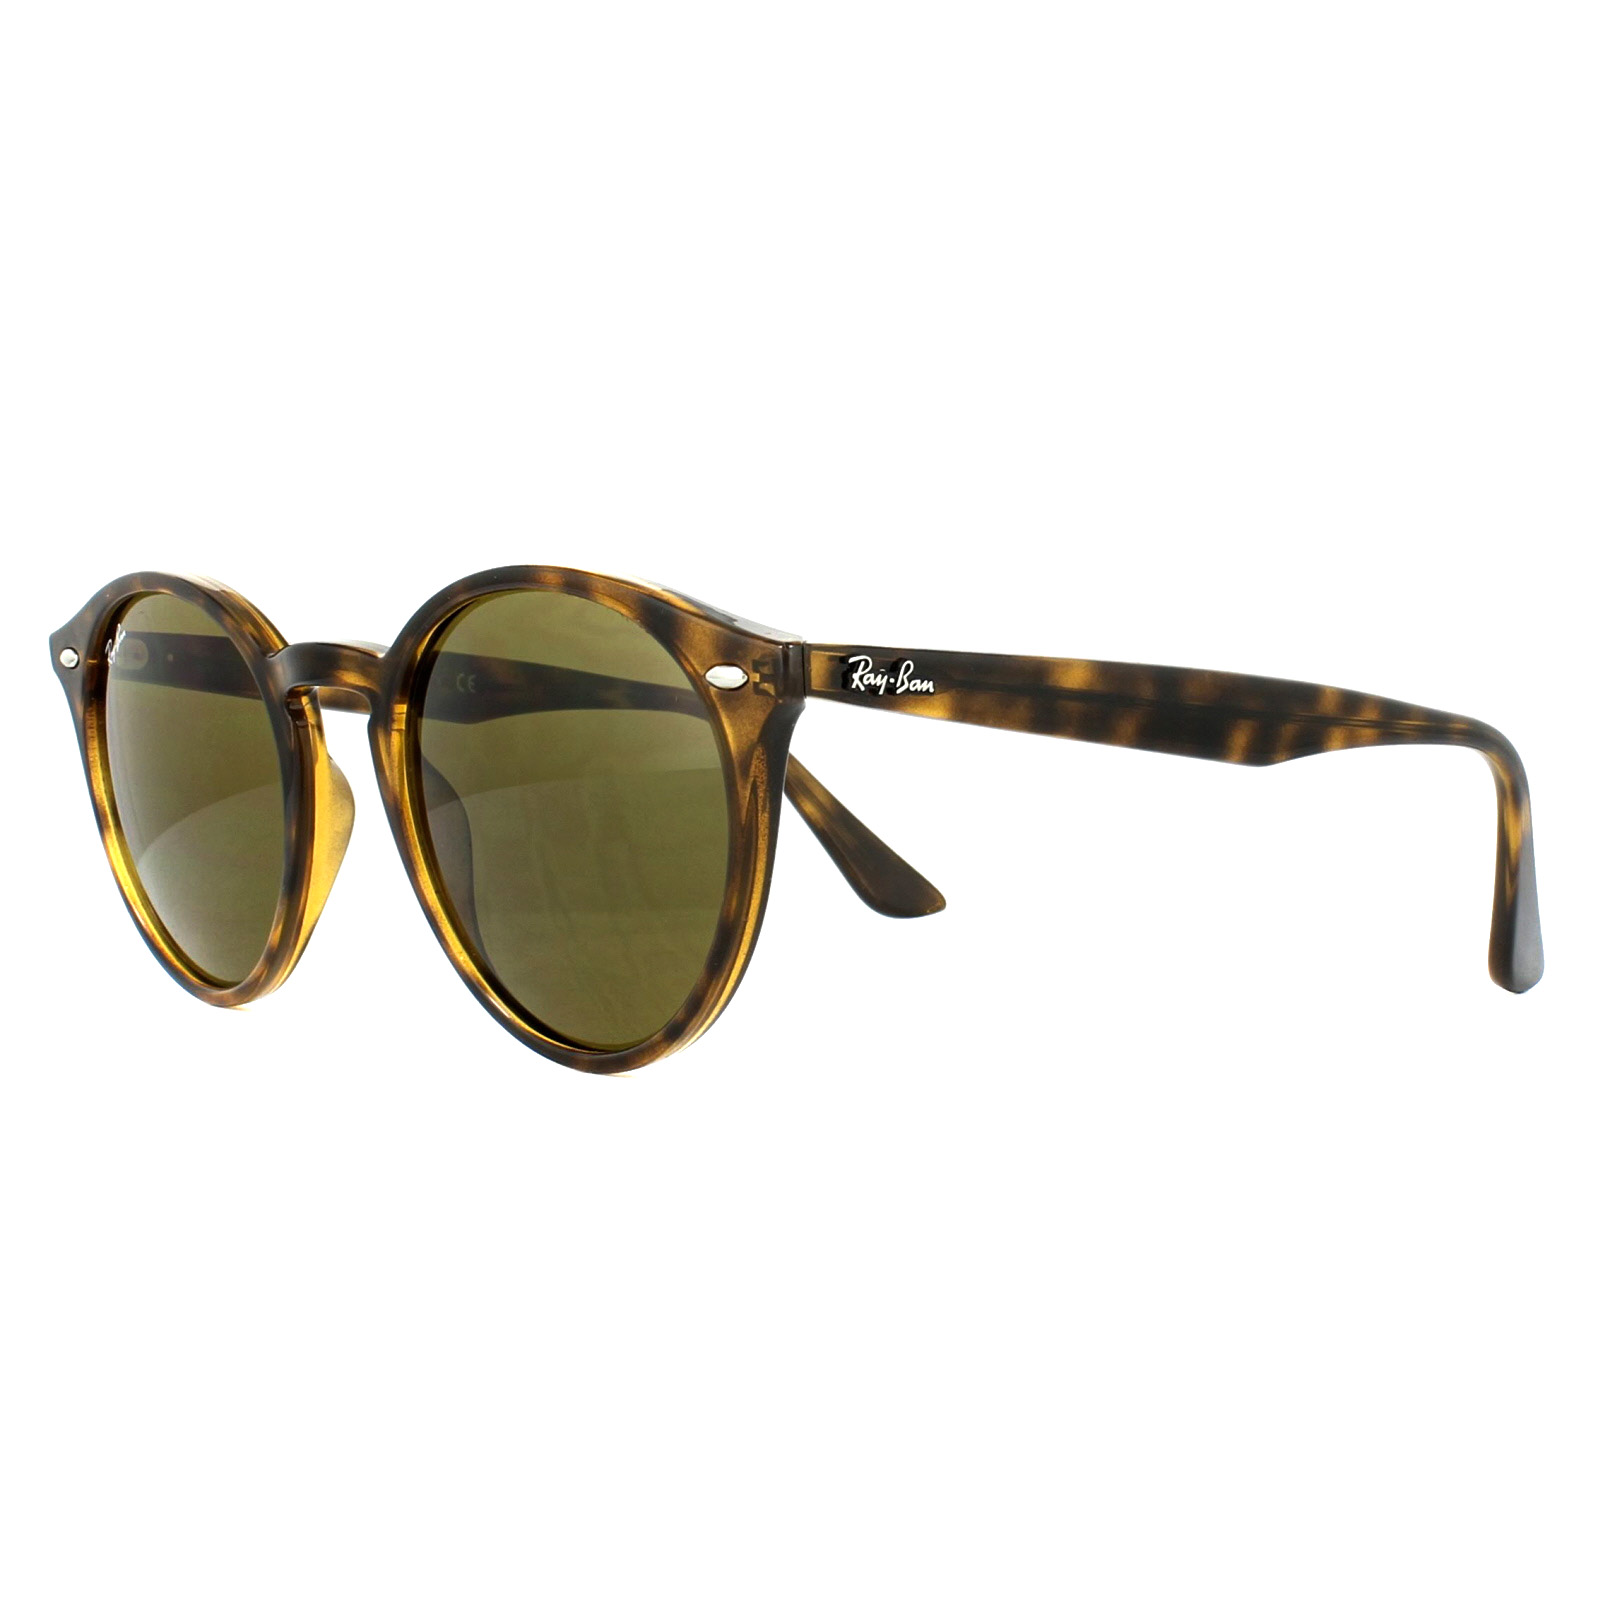 Sentinel Ray-Ban Sunglasses 2180 710/73 Tortoise Brown B-15 51mm